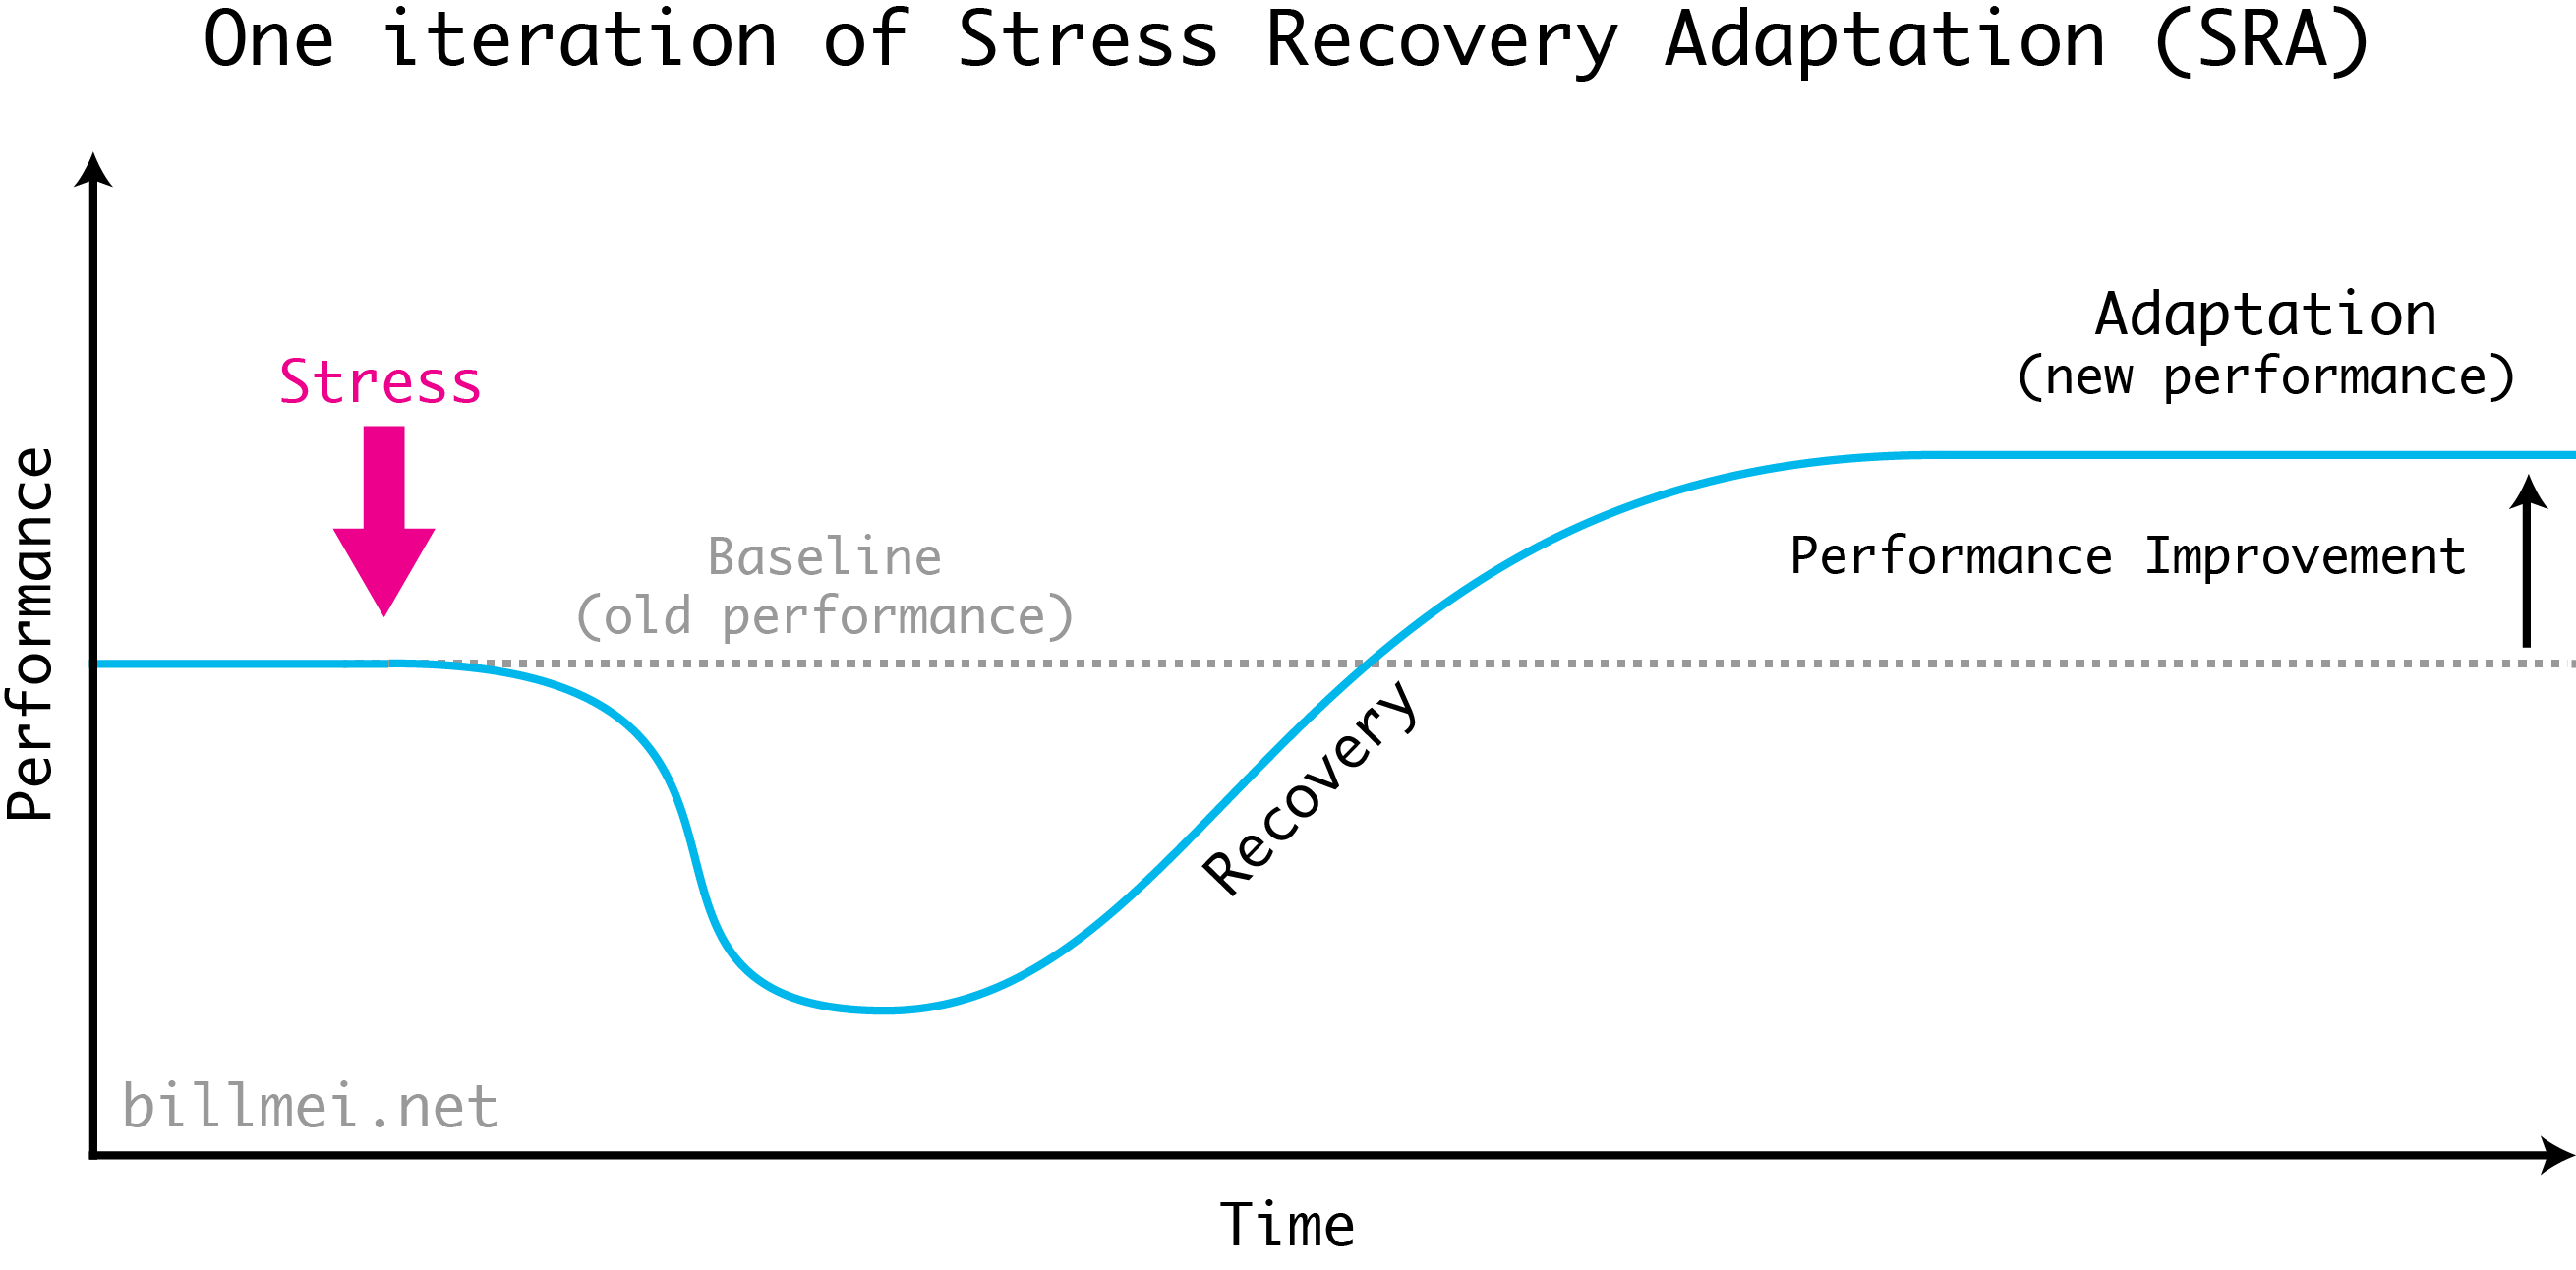 One iteration of the Stress Recovery Adaptation (SRA) cycle. Performing exercise creates stress on the body, which diminishes your biological capabilities for a short time. As you eat and sleep, your body repairs itself during recovery, plus some additional extra capacity (adaptation) to handle future stress.